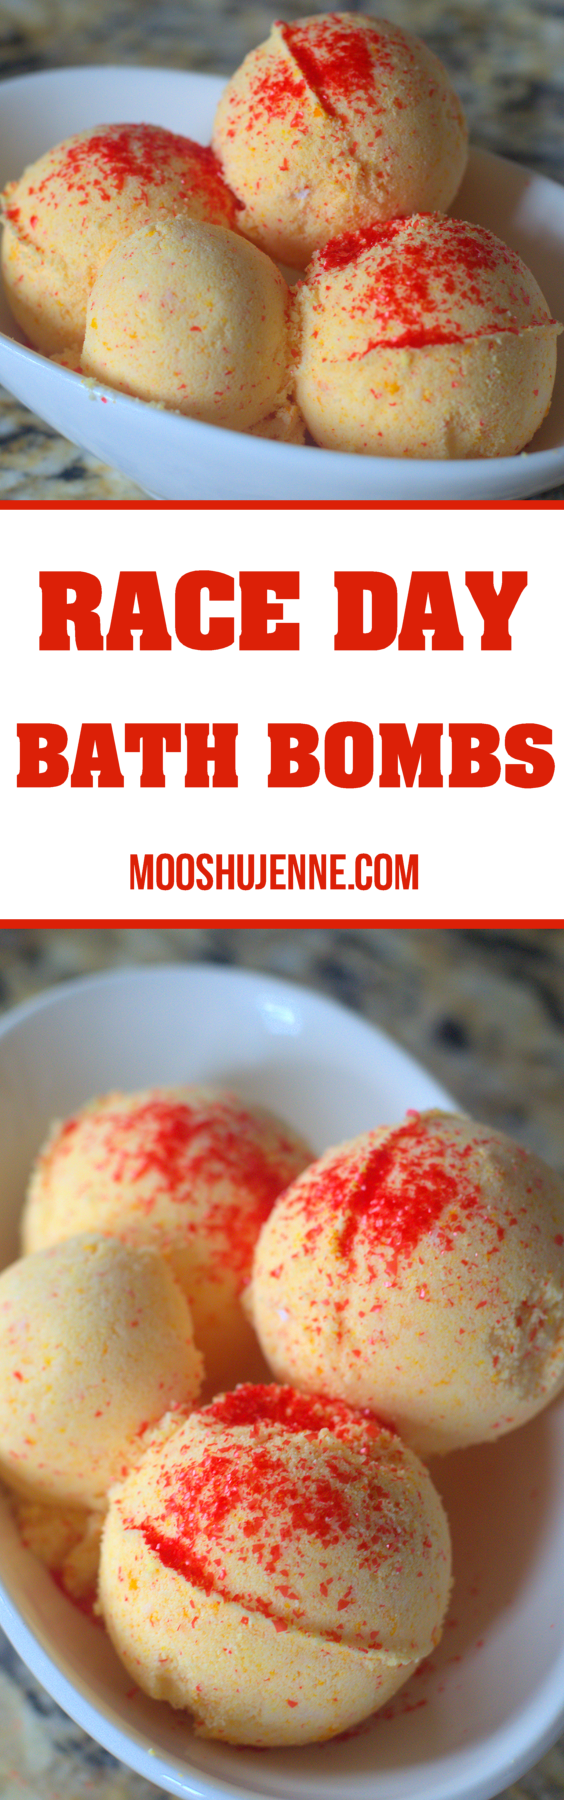 When we do go those loud engines can really do a number on your ears. Along with the aches and pains from walking from the parking lot into the stands and sitting in the stands all day long. That's why I have these Race Day Bath Bombs and Advil® Film-Coated Rapid Release Formula.